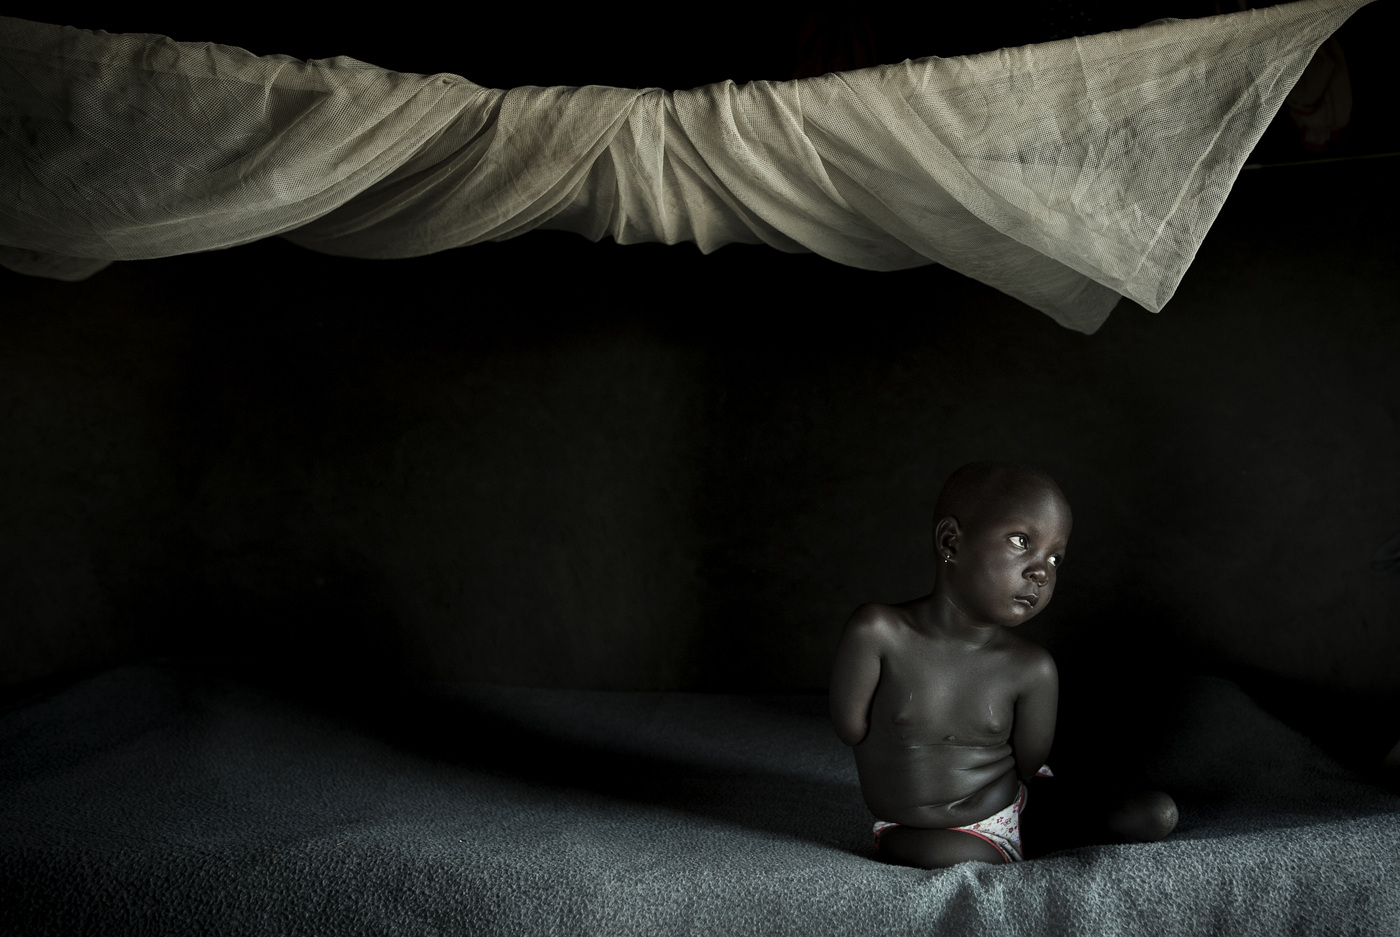 John T. Pedersen Photography - Gifti Kope is (7), and born without limbs. Why am I not like other children, she asks her mother.